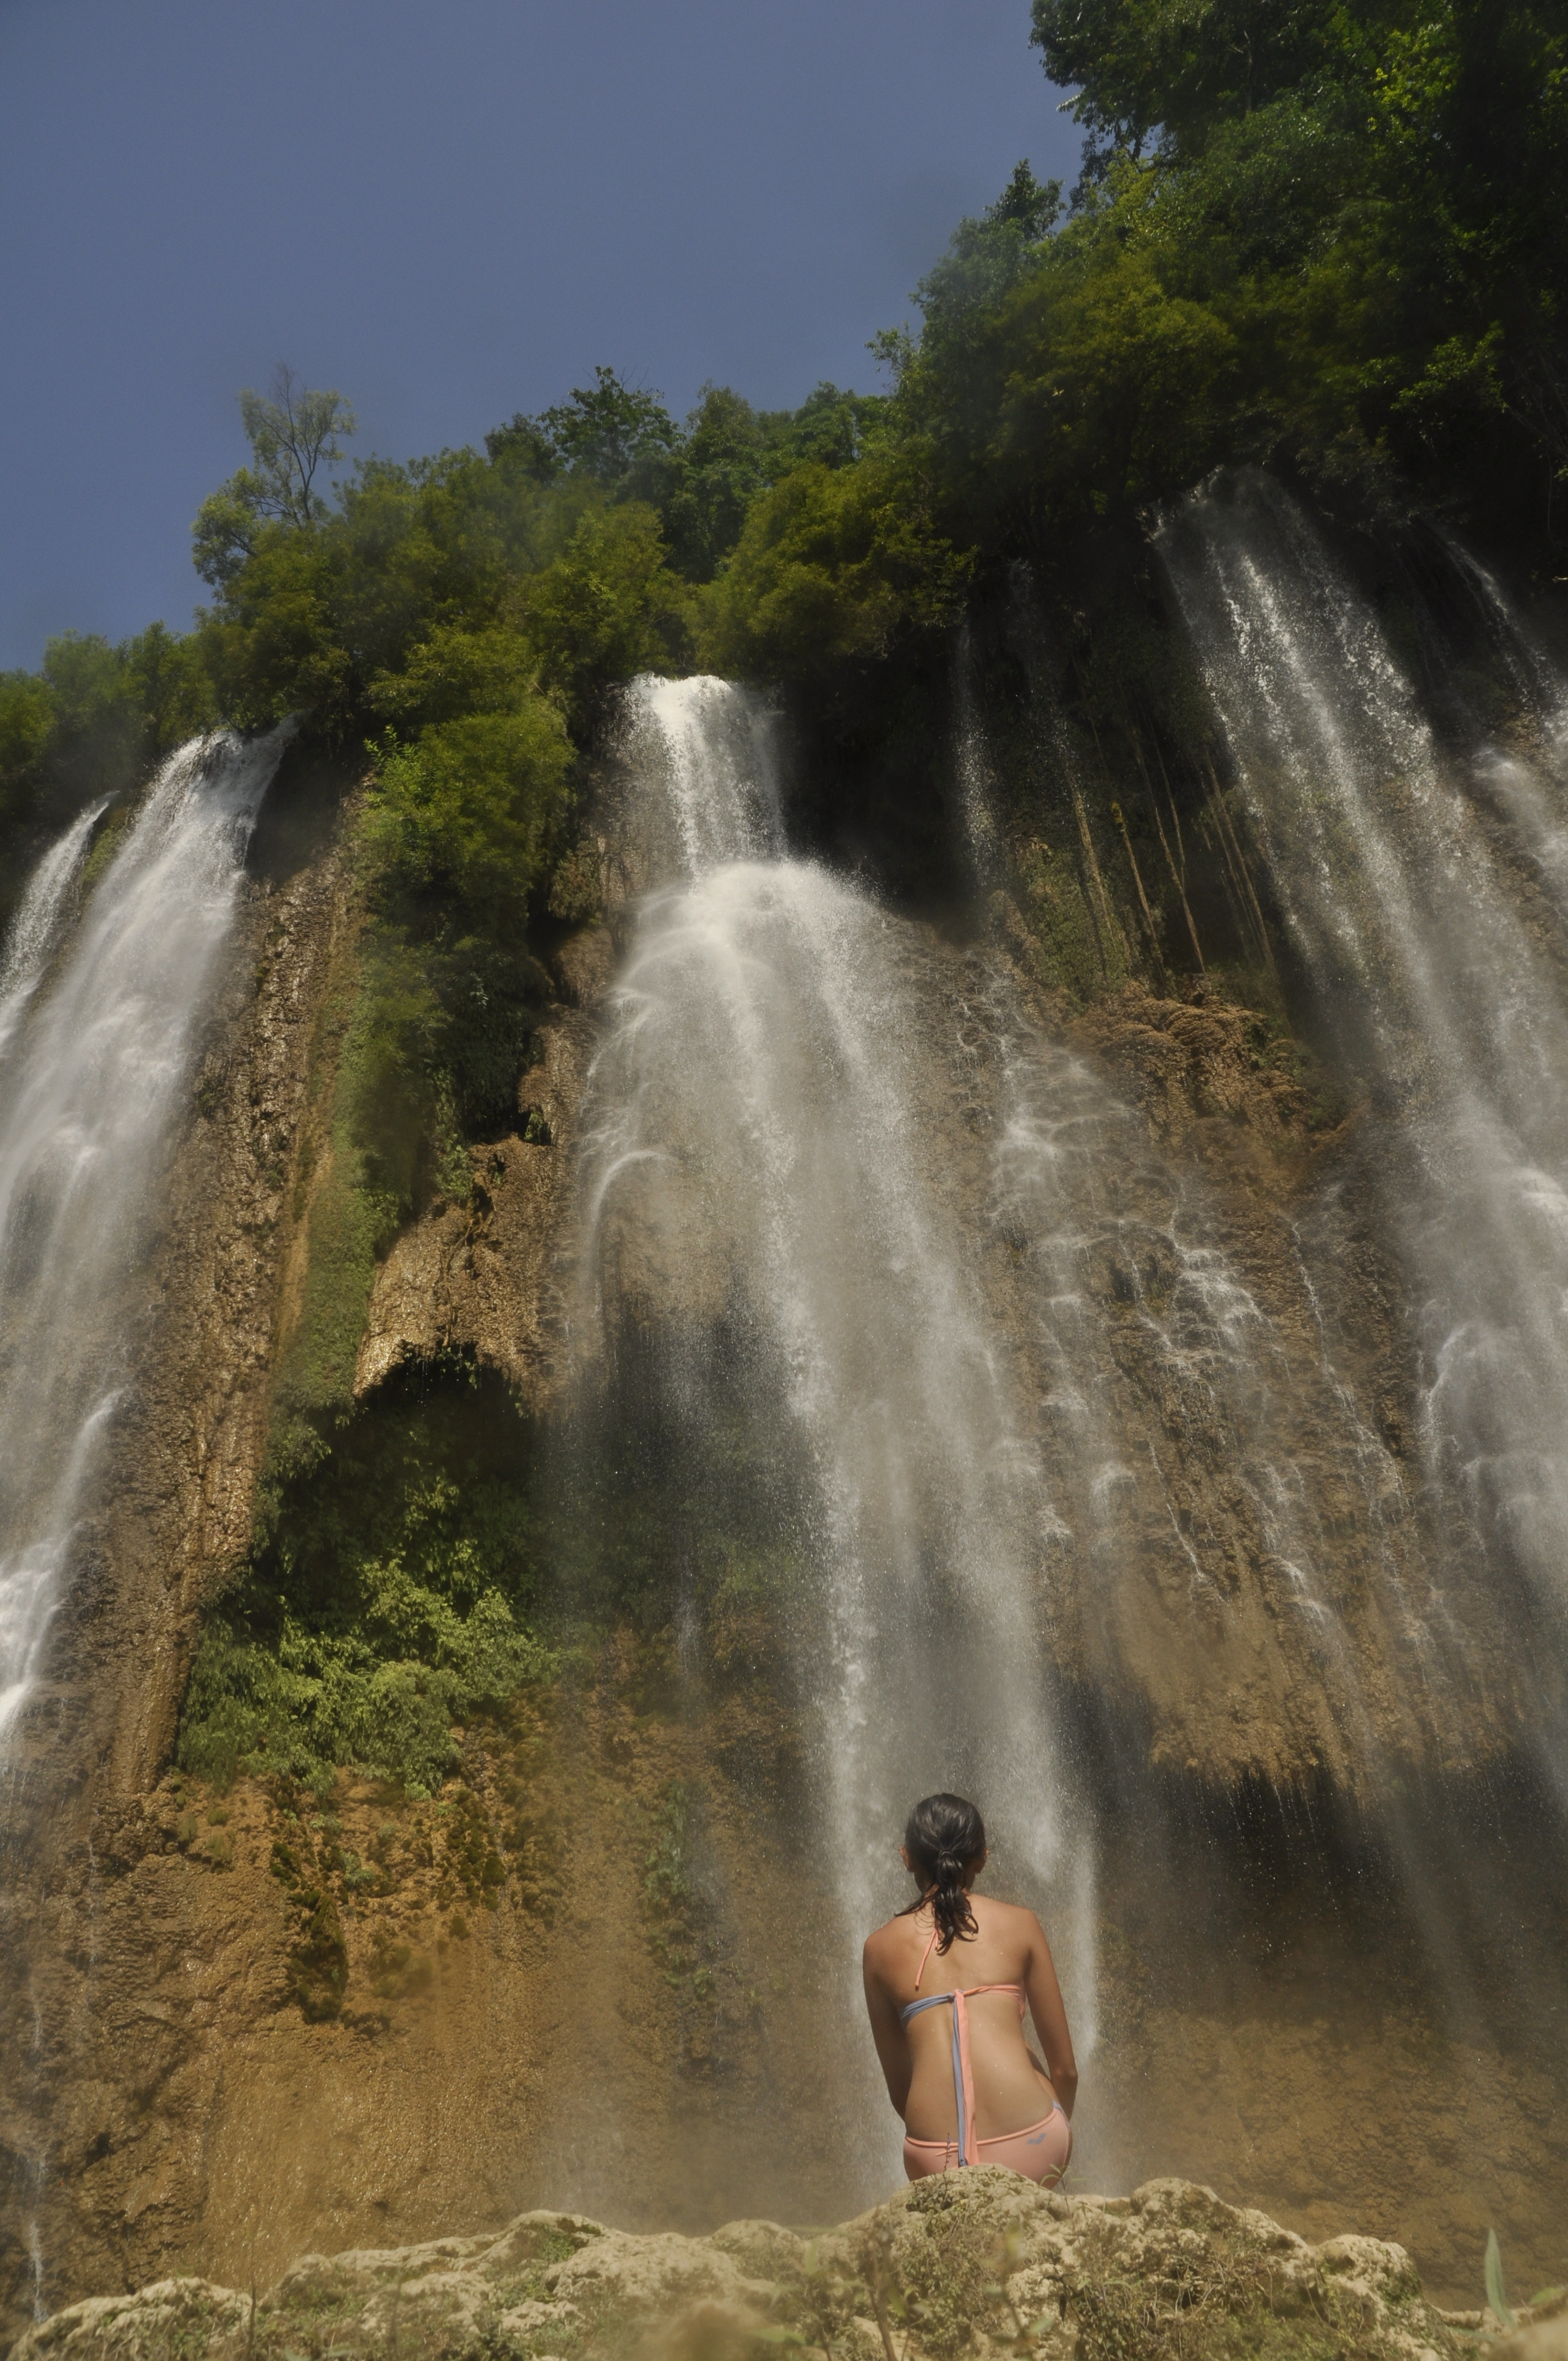 Thailand S Best Kept Secret Tee Lor Sue Waterfall The